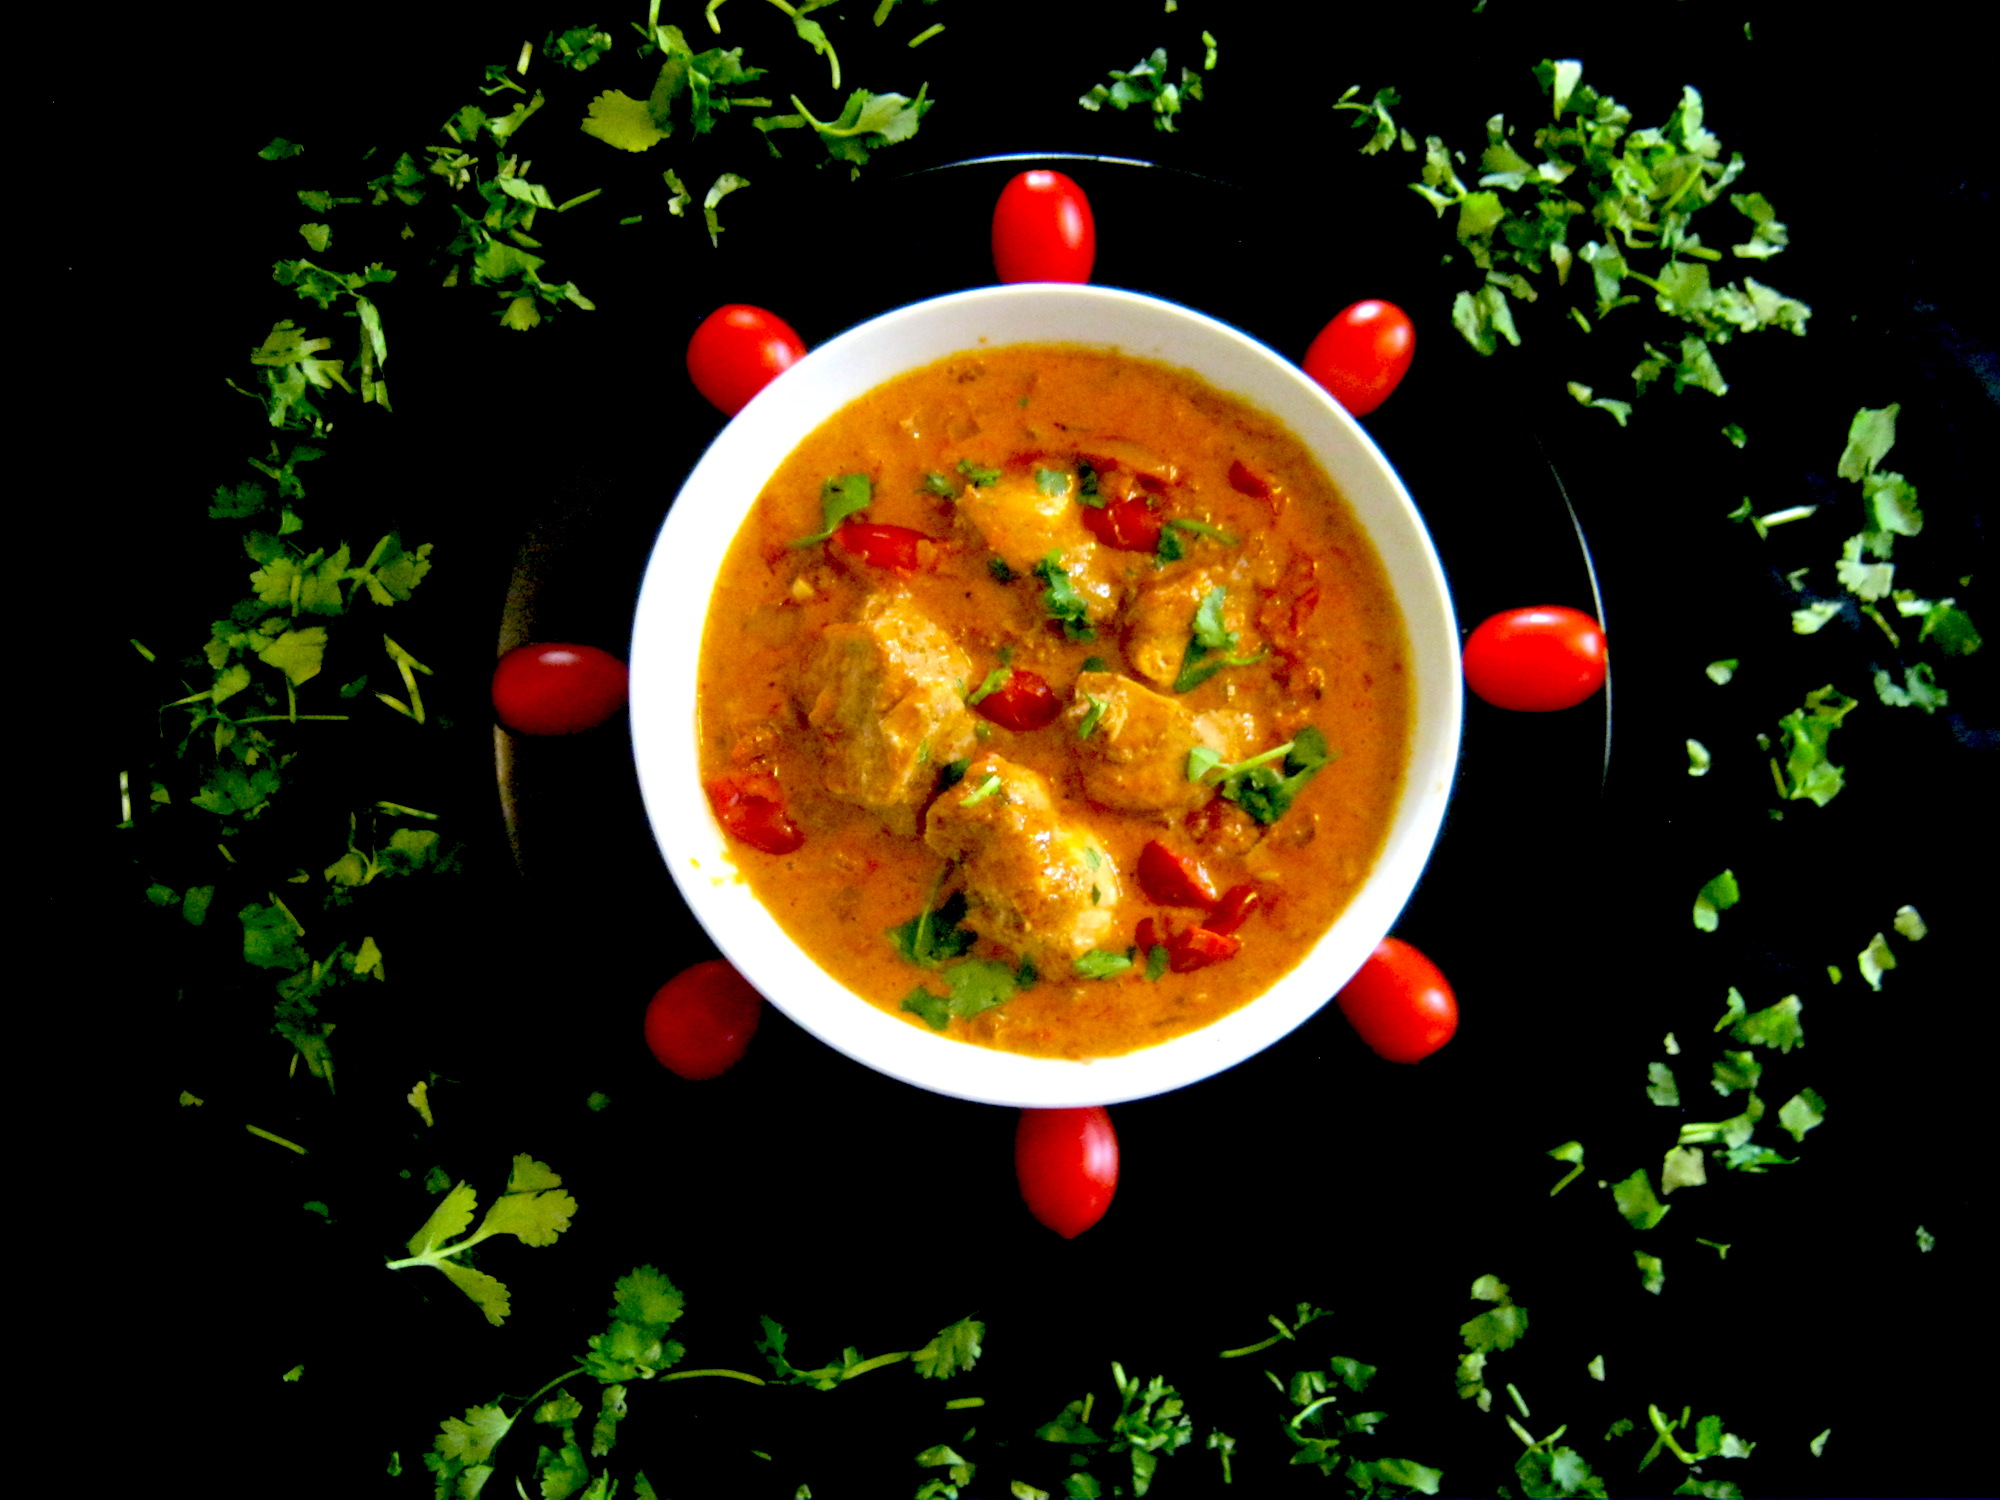 Butter chicken garnished with tomatoes and cilantro leaves